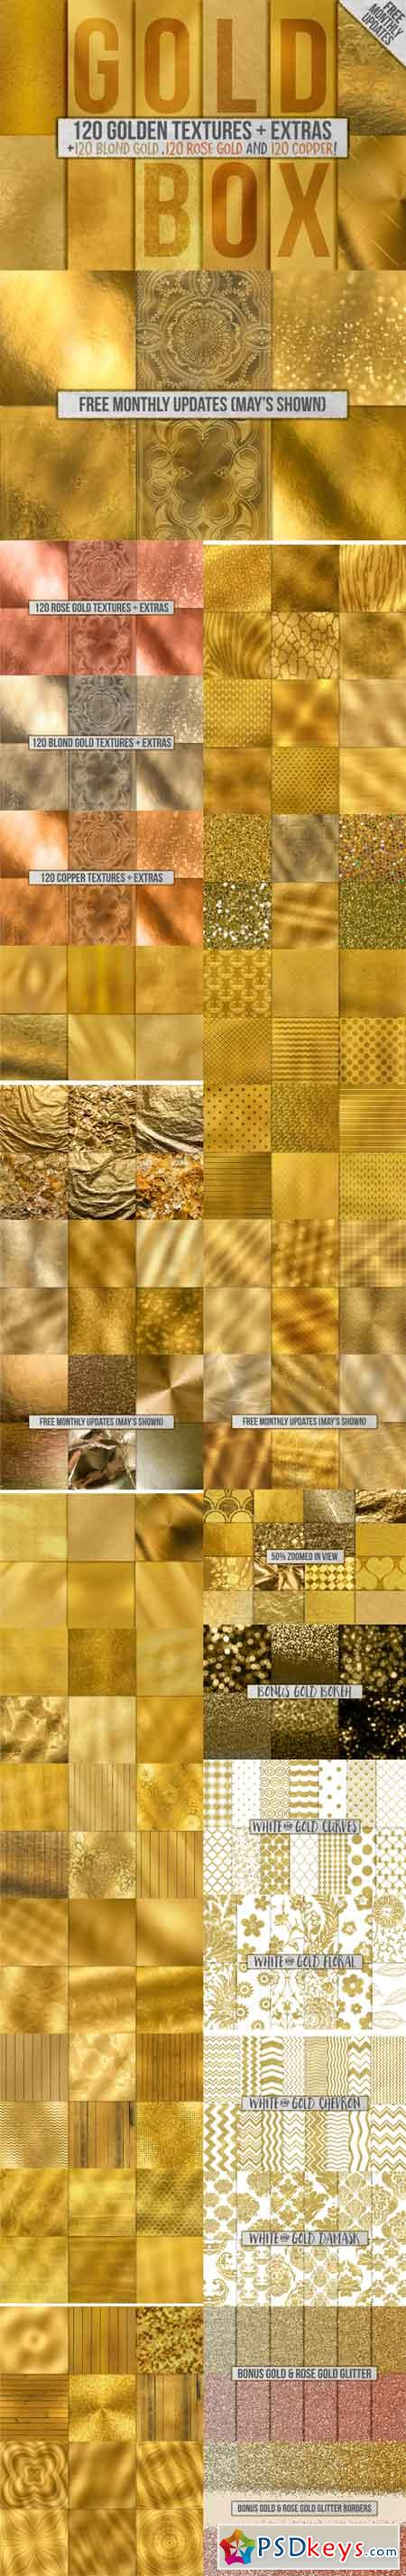 120 Gold Foil Backgrounds + Extras 675612 » Free Download